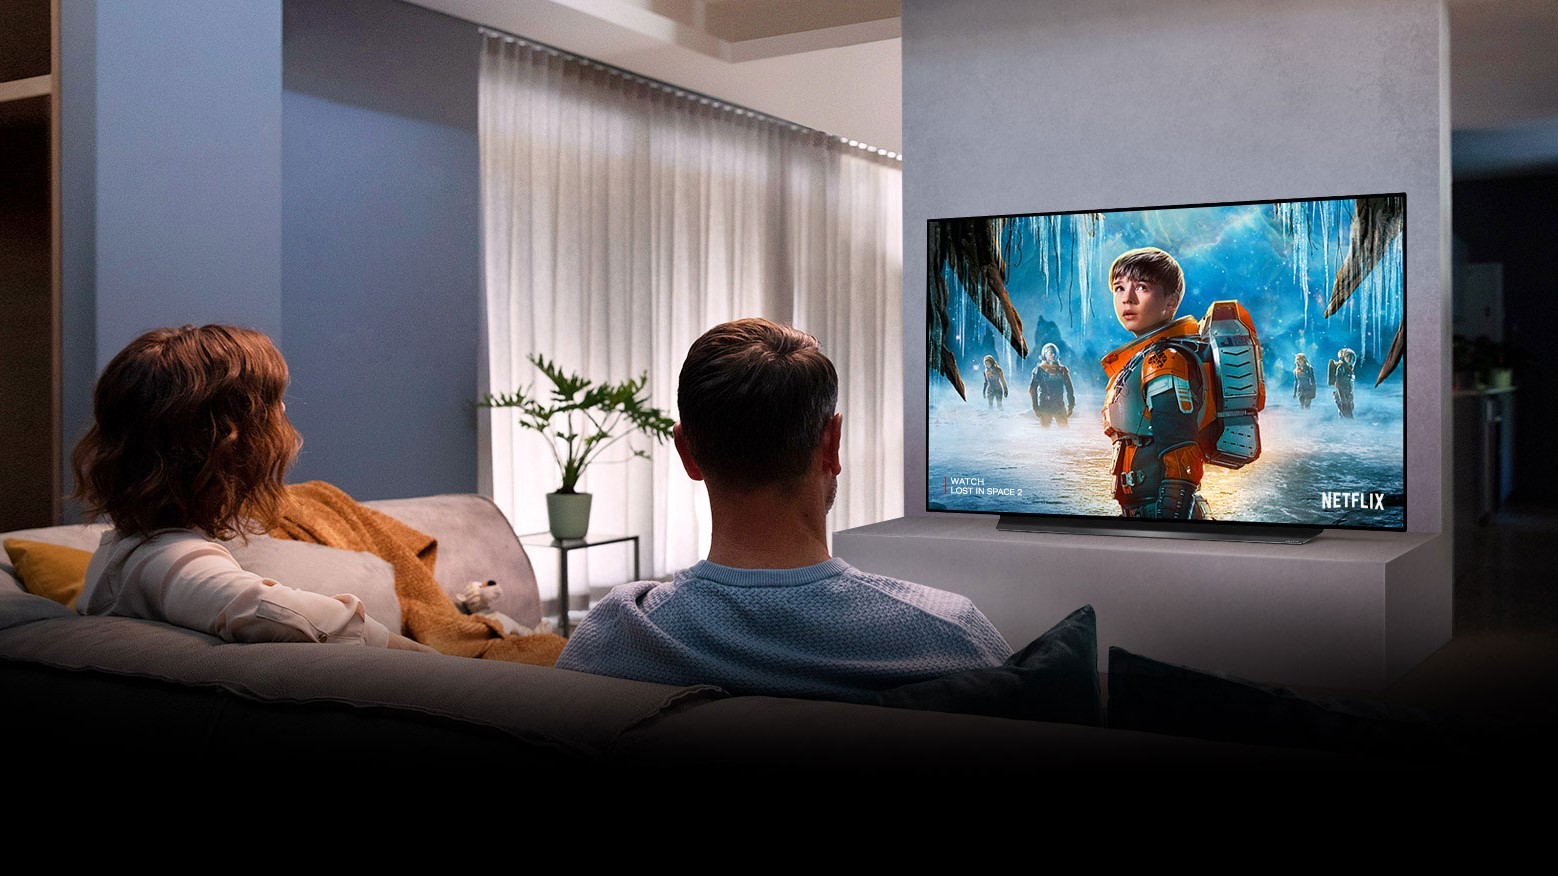 Best 4K TV 2020: your definitive guide to the top Ultra-HD TVs | TechRadar